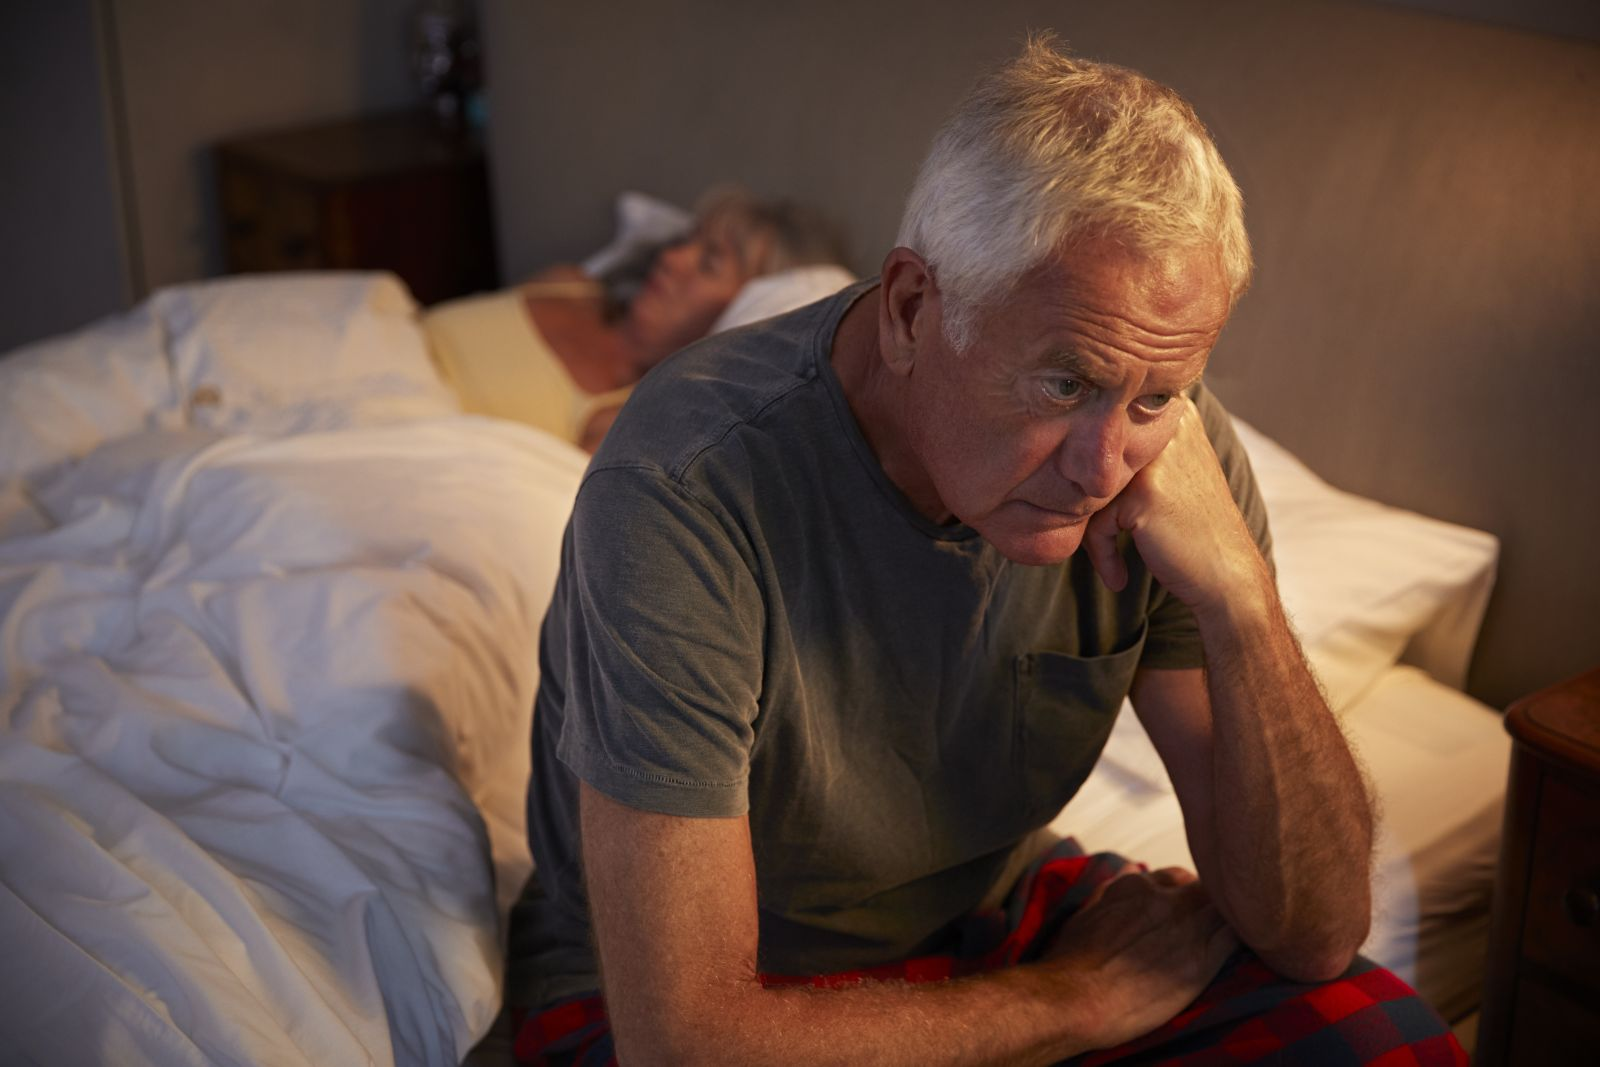 Can't sleep? You may be at risk for atrial fibrillation ...